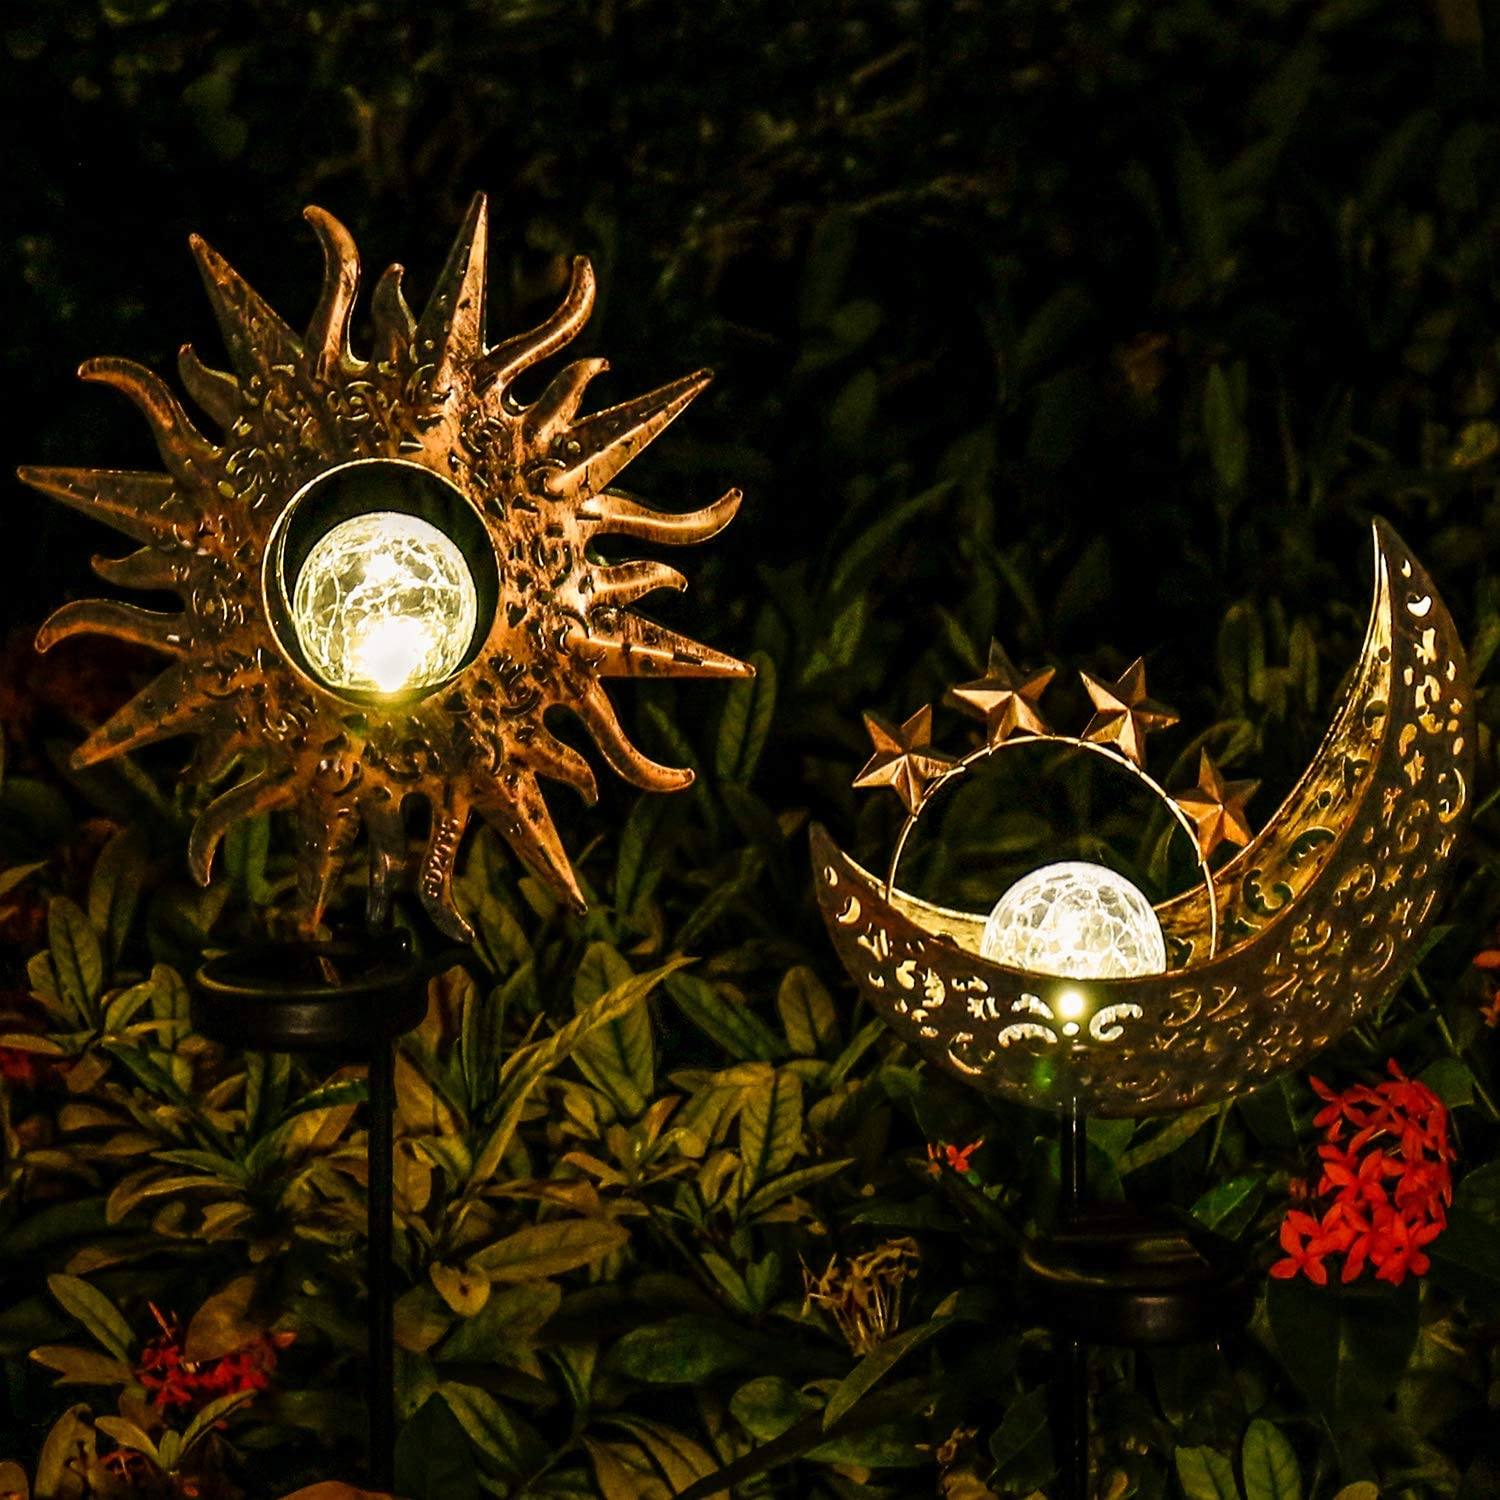 Solar Lights Outdoor Garden Decor,Waterproof Metal Sun Moon Decorative Stakes for Walkway,Yard,Lawn,Patio(2 Pack)